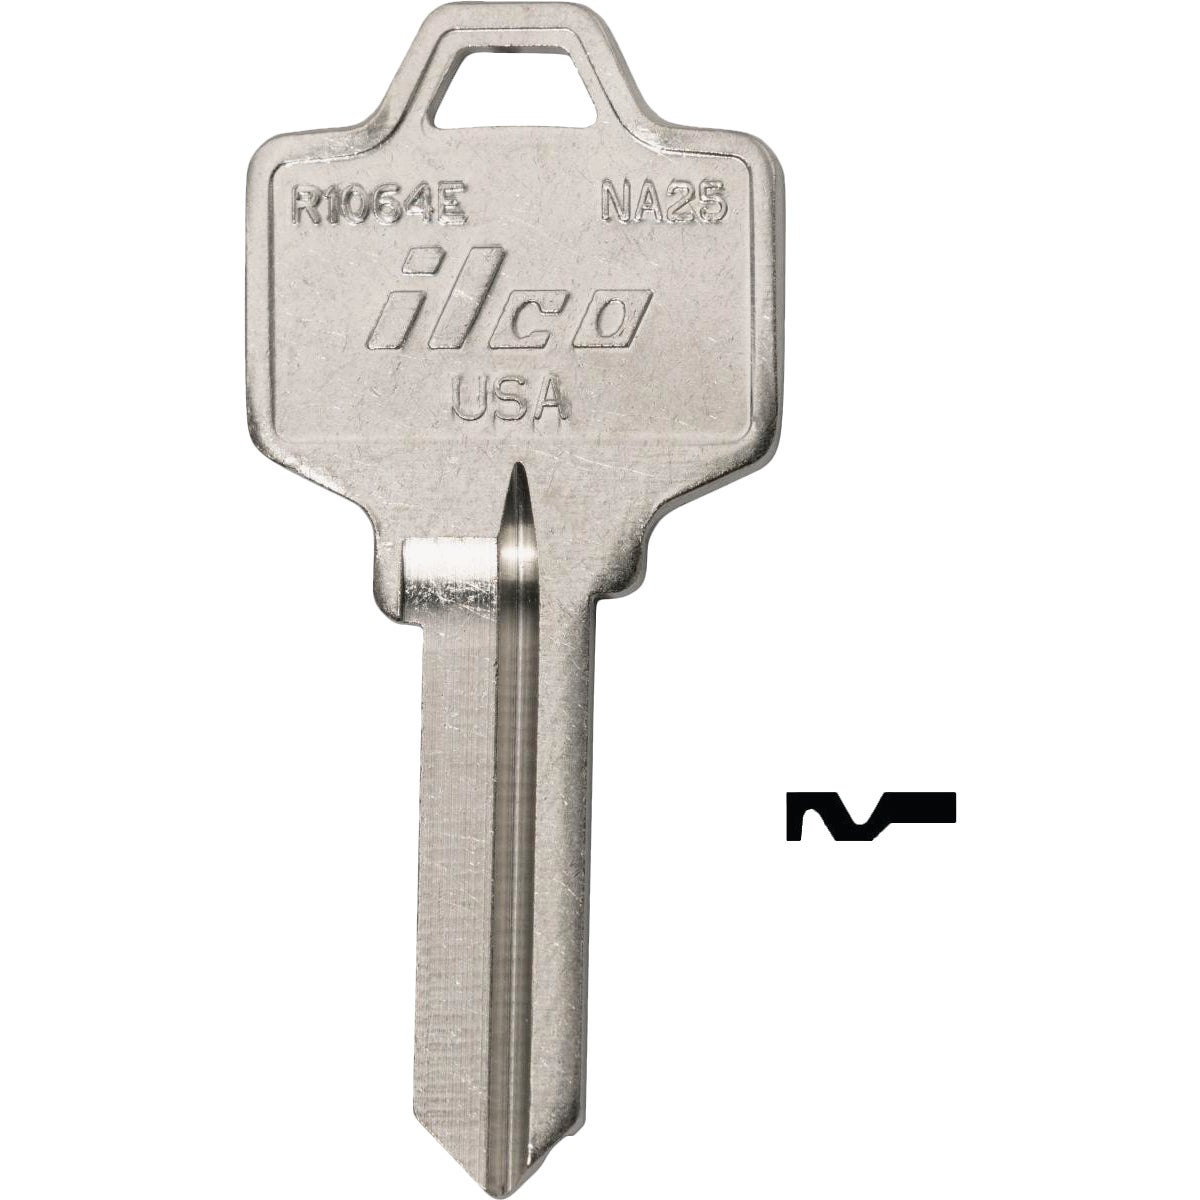 NA25 NATIONL CABINET KEY - DIB R1064E DIB by Ilco Corp